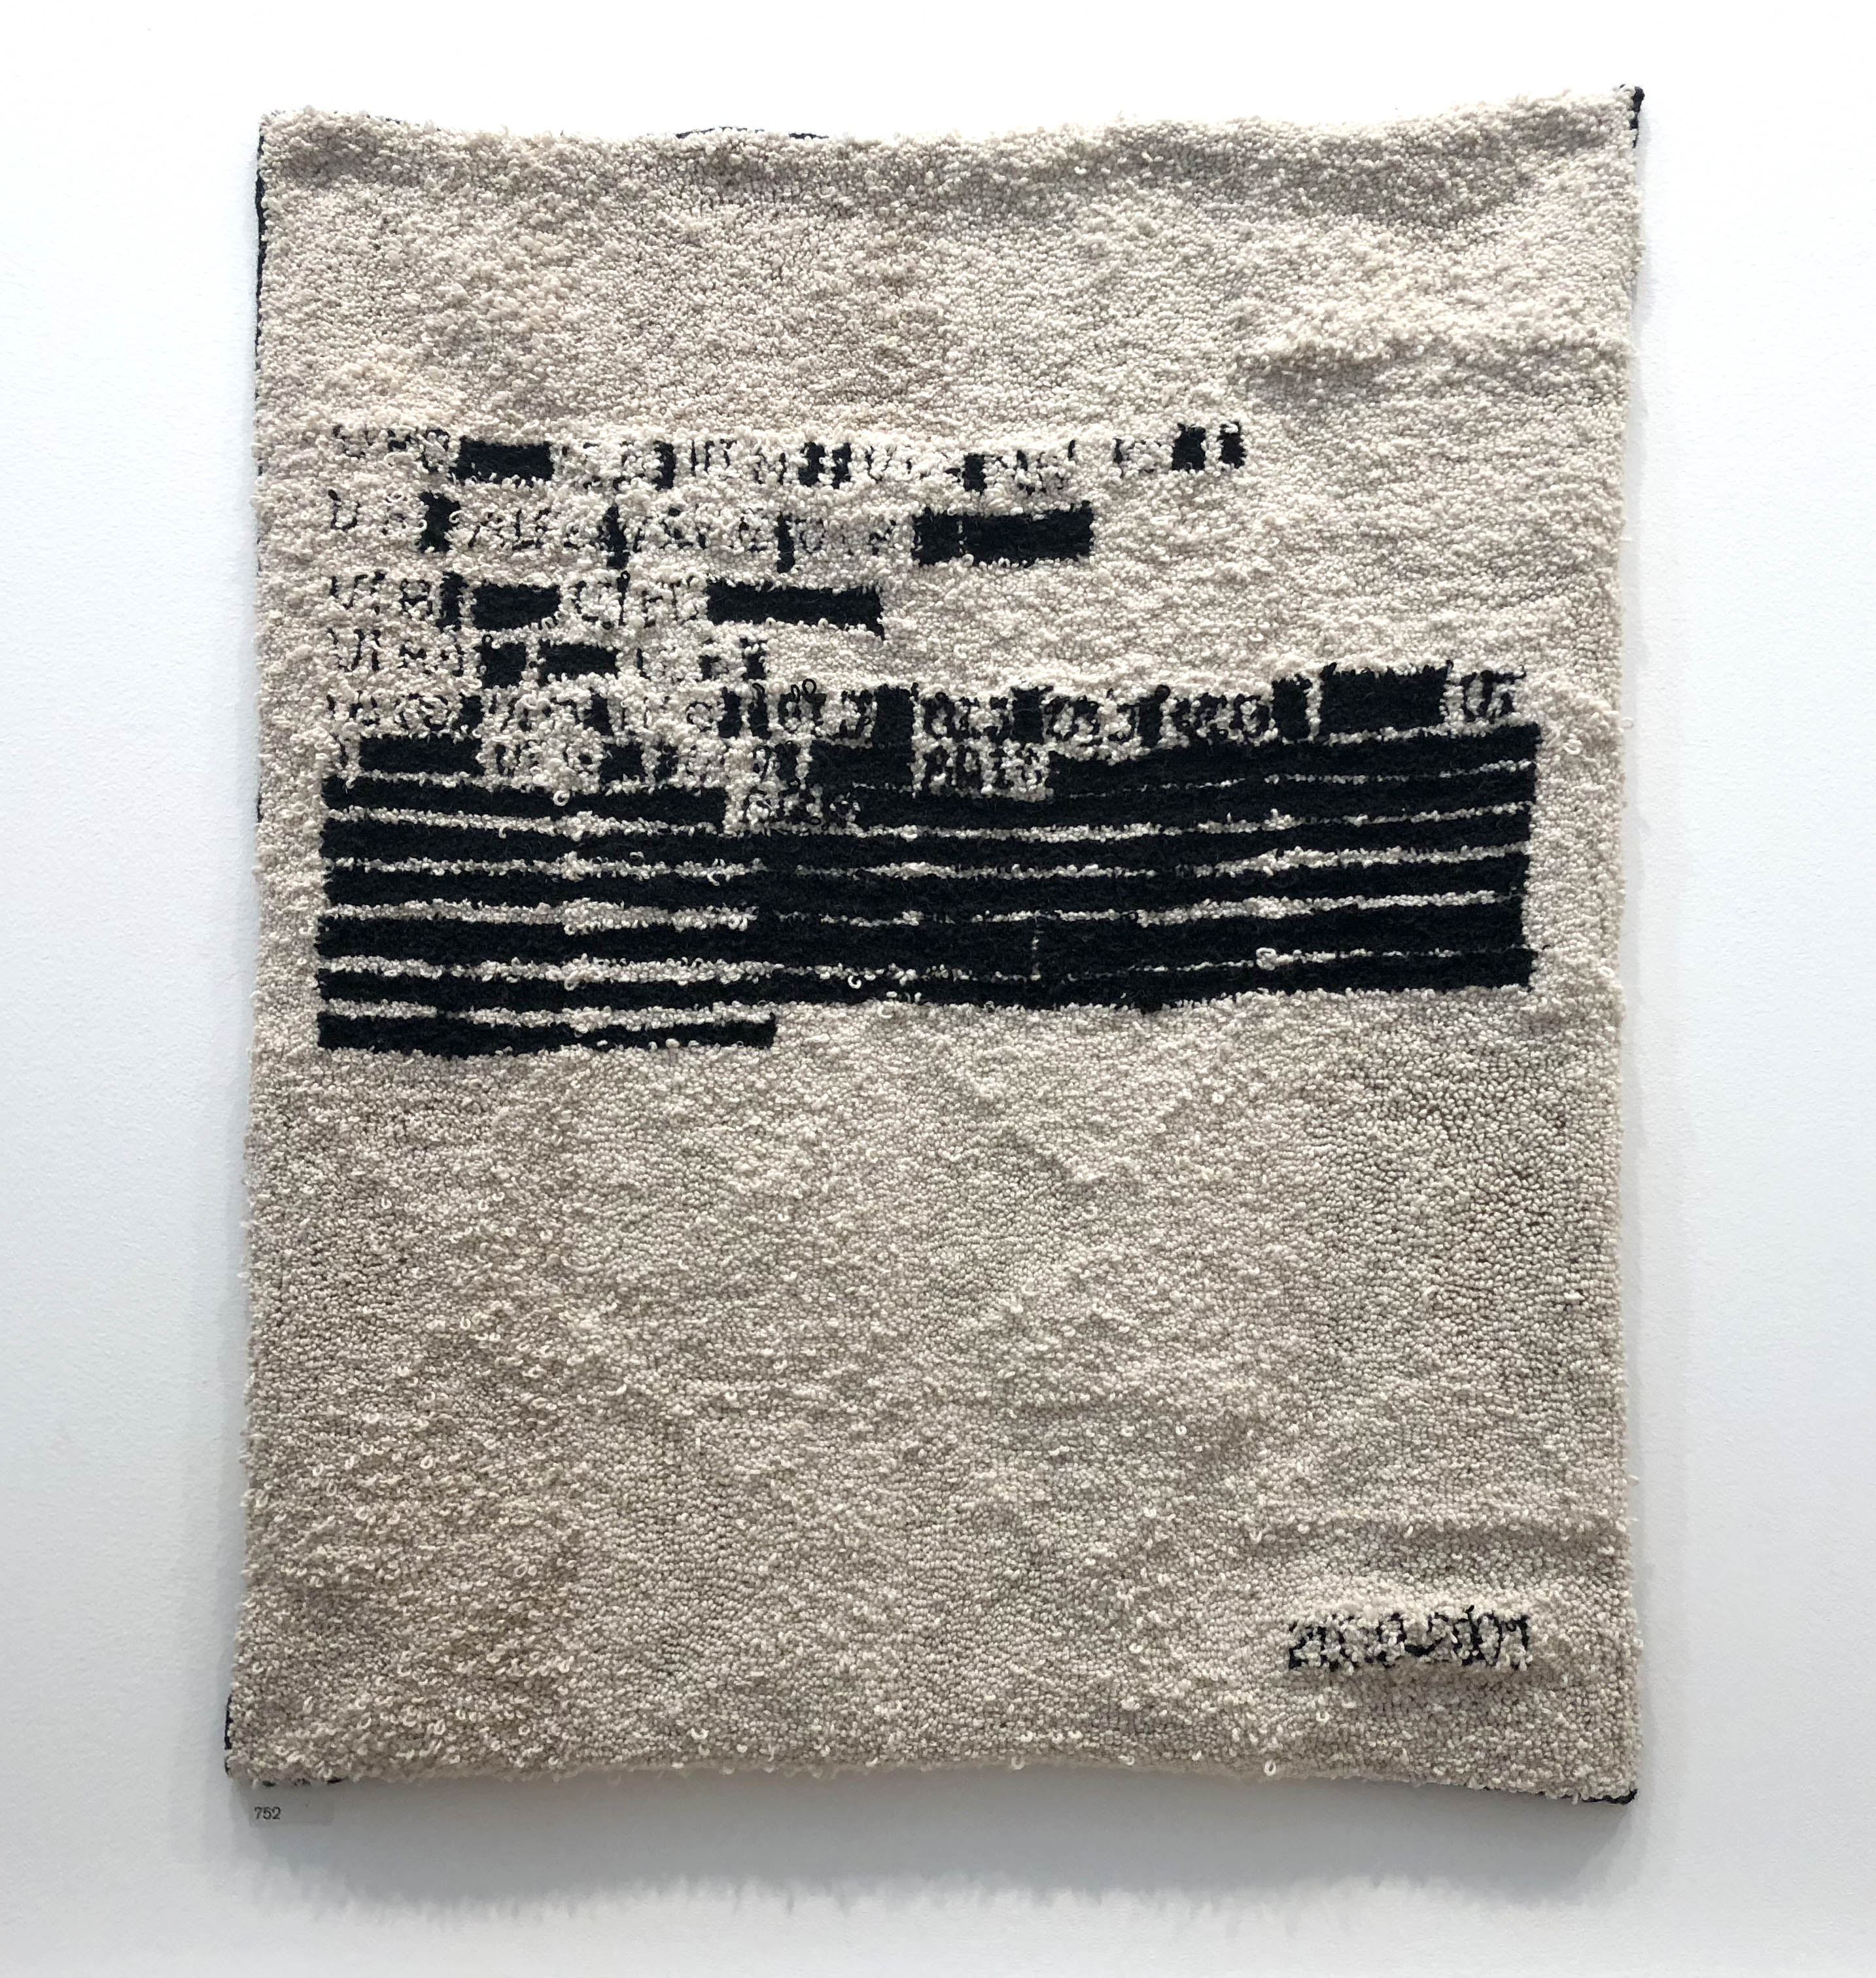 DOC_00000200901.PDF Emily Lazerwitz hooked wall hanging at Royal Academy Summer Exhibition